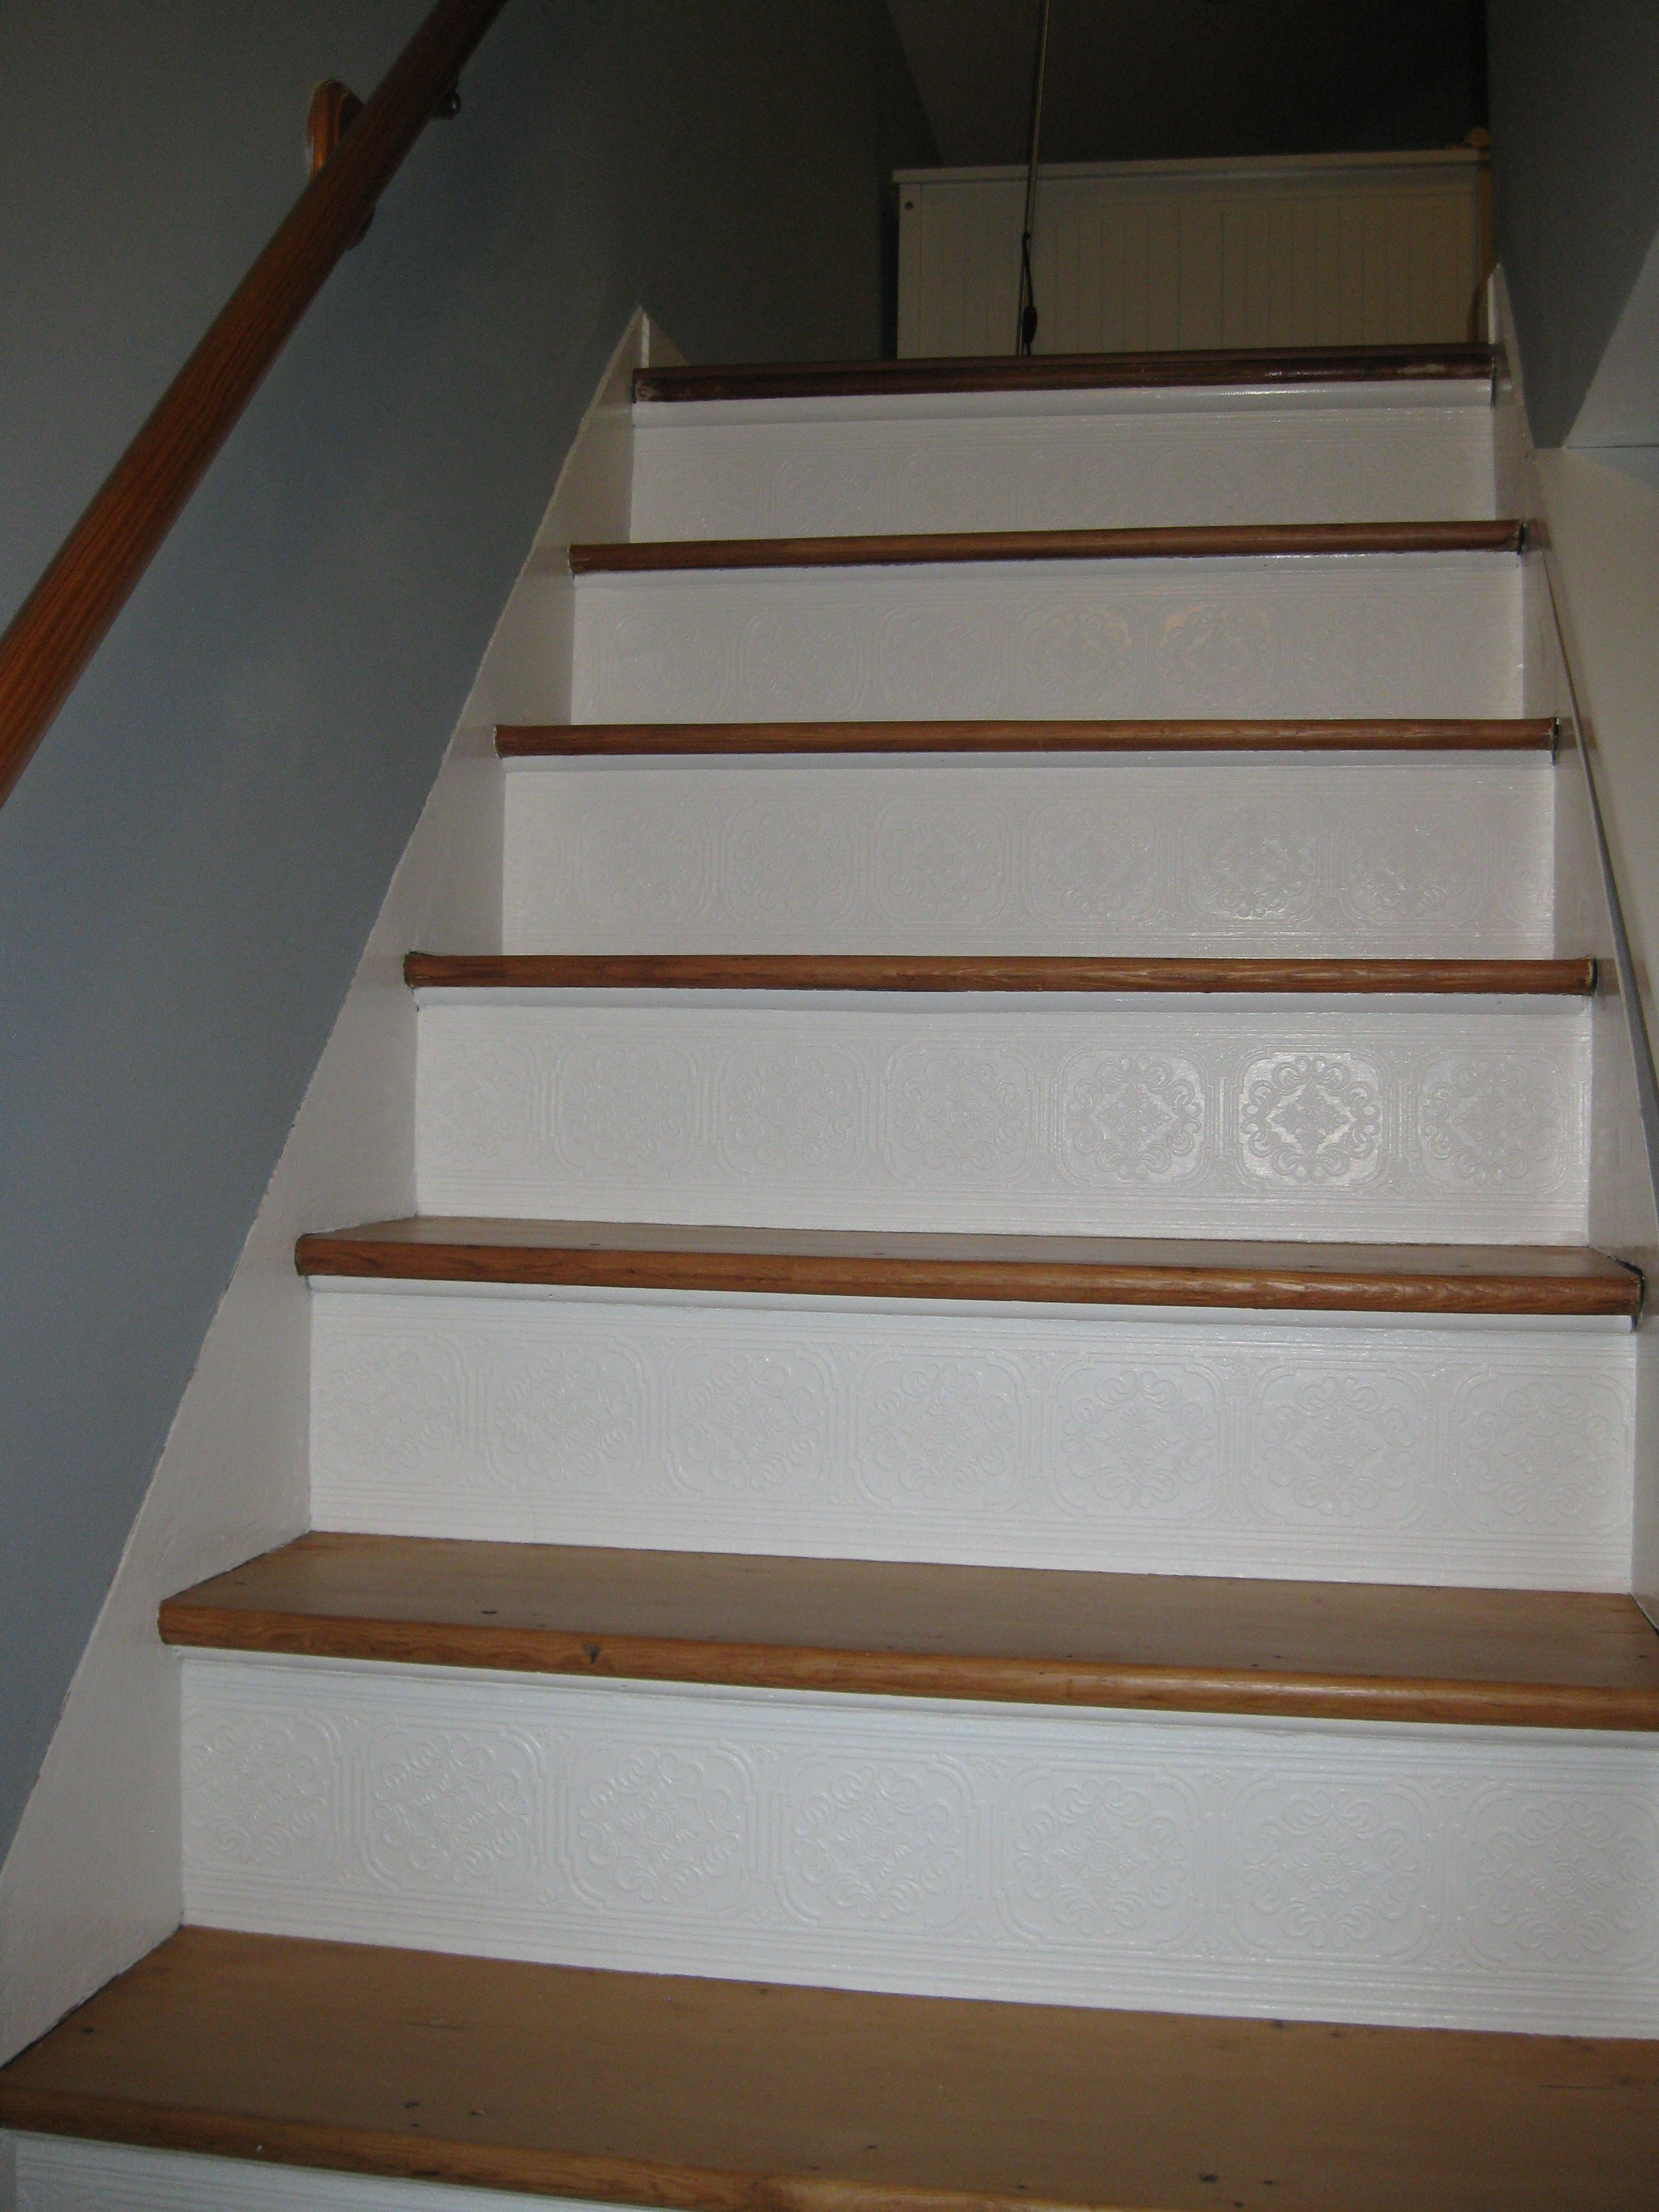 The finished stairs. 3 rolls of paintable, textured